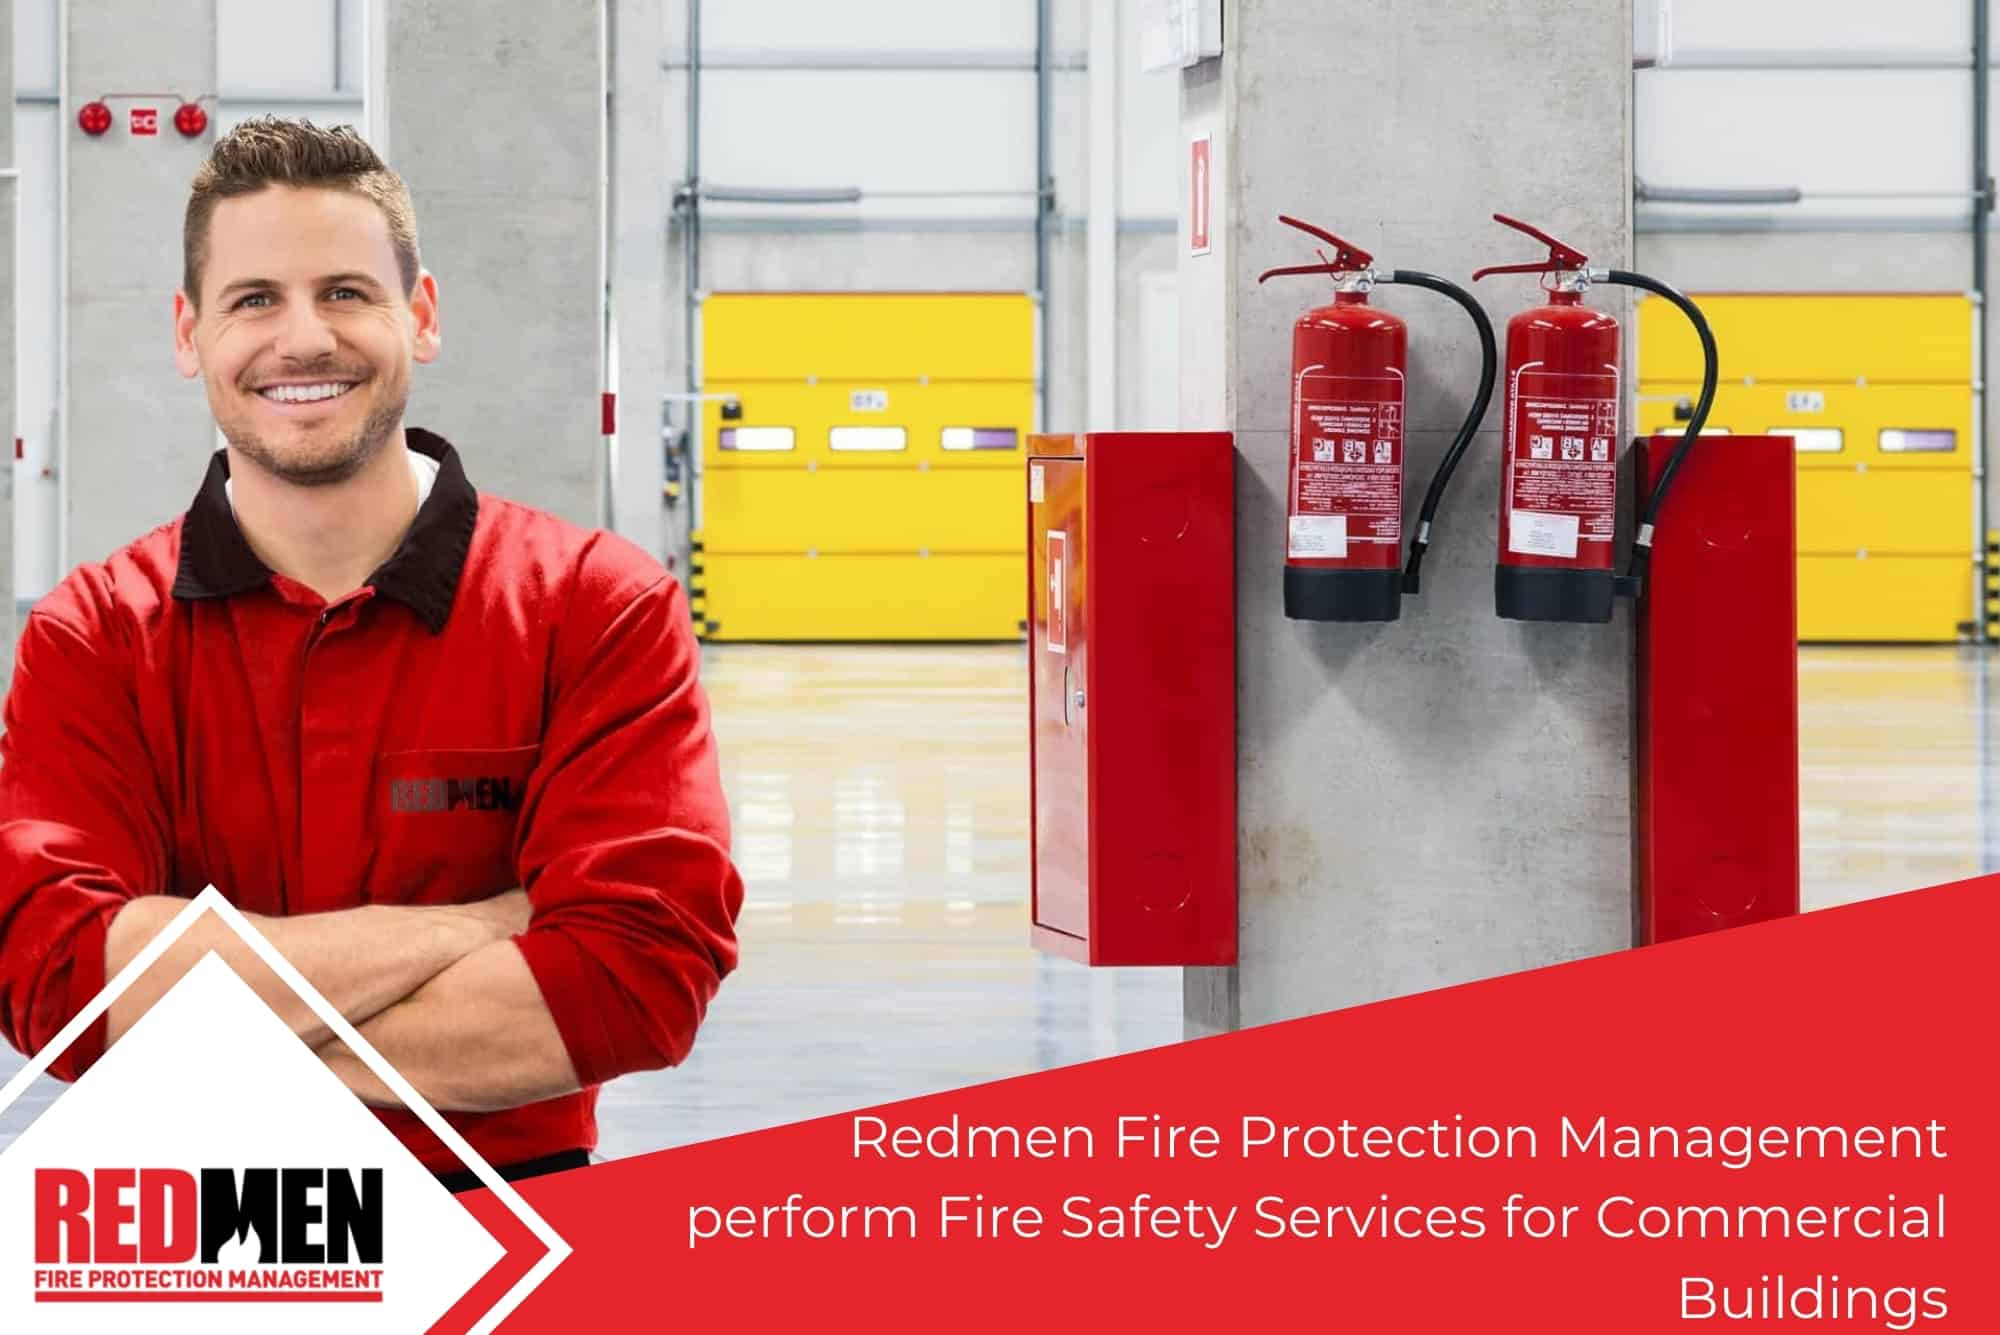 Redmen Fire Protection Management perform Fire Safety Services for Commercial Buildings